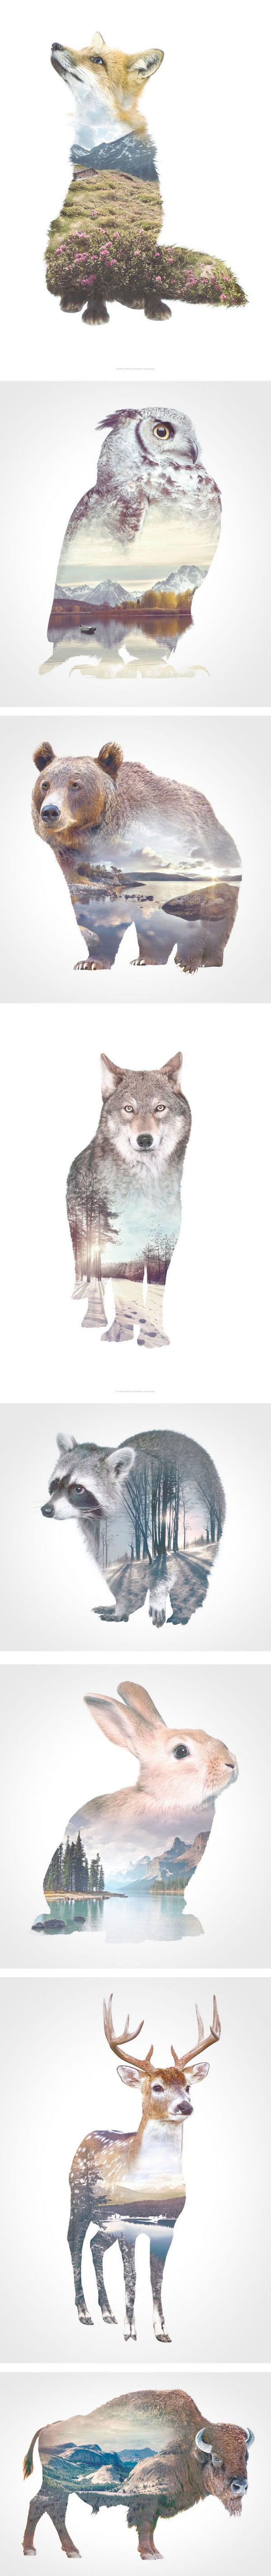 a series of double exposures of animals and wildernesses, wildlife photography